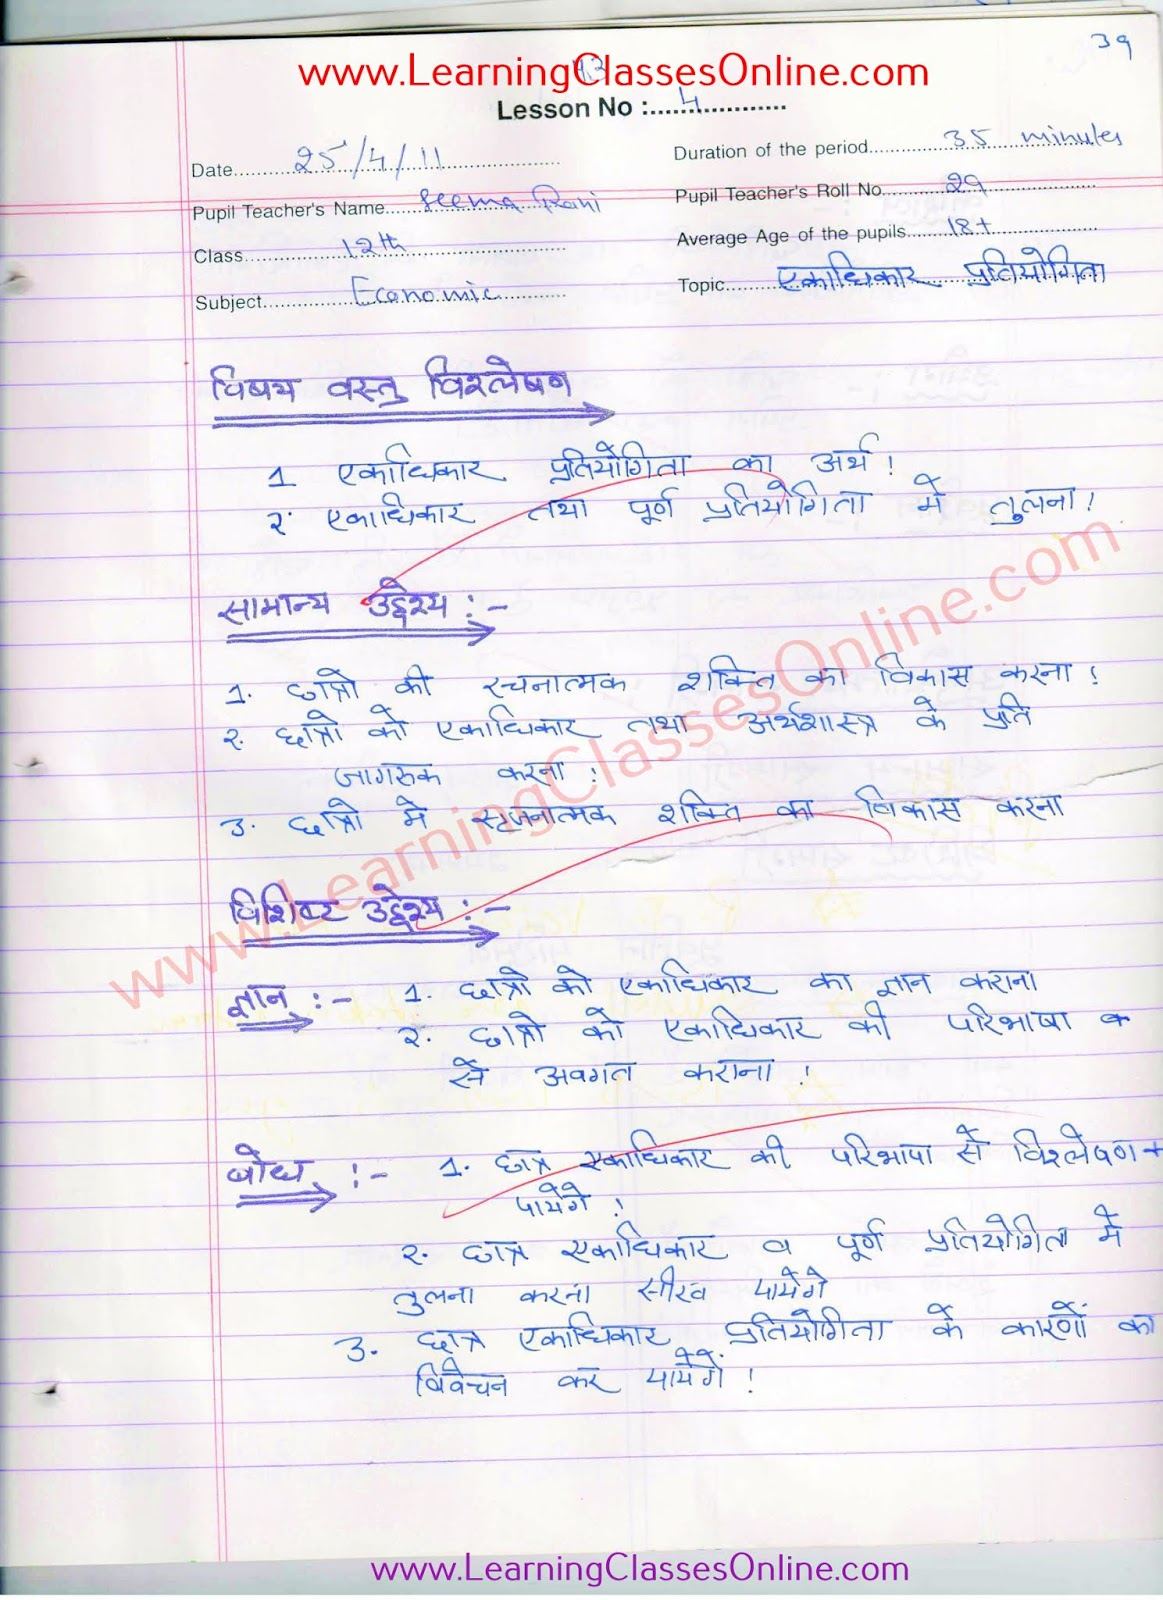 Economics lesson plan in hindi for class 11th free download pdf